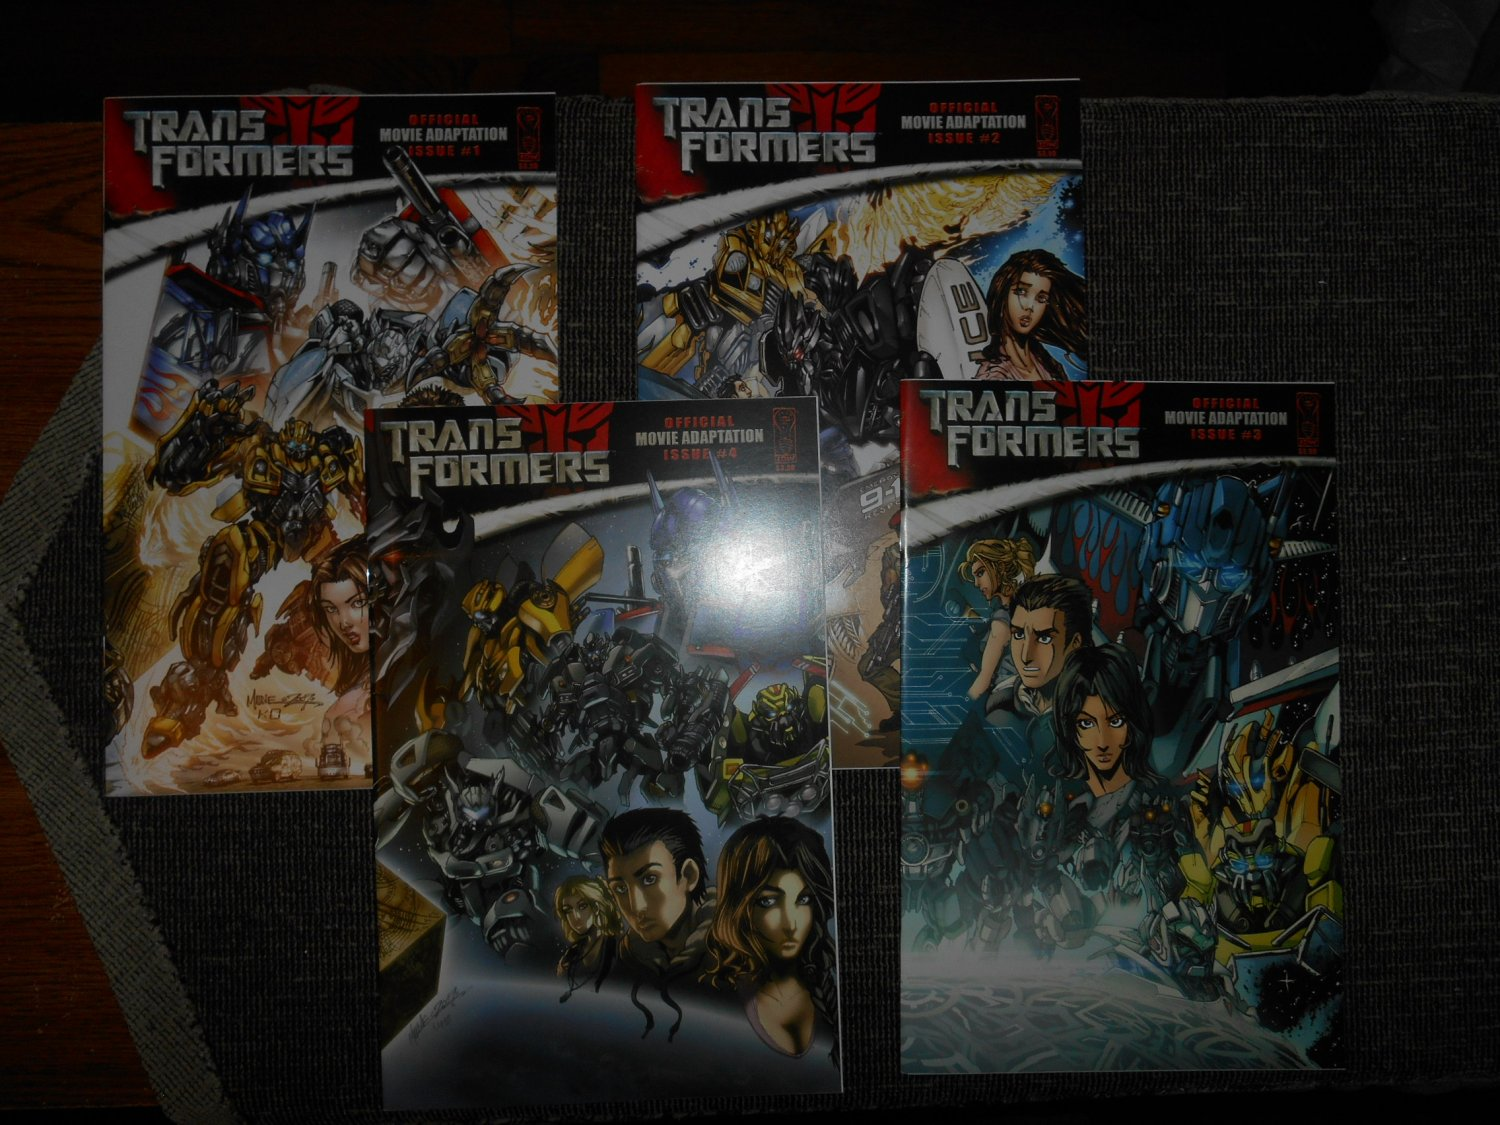 2006 Transformers Comic Movie Adaptation - Rare - Complete Series  - Very Fine -